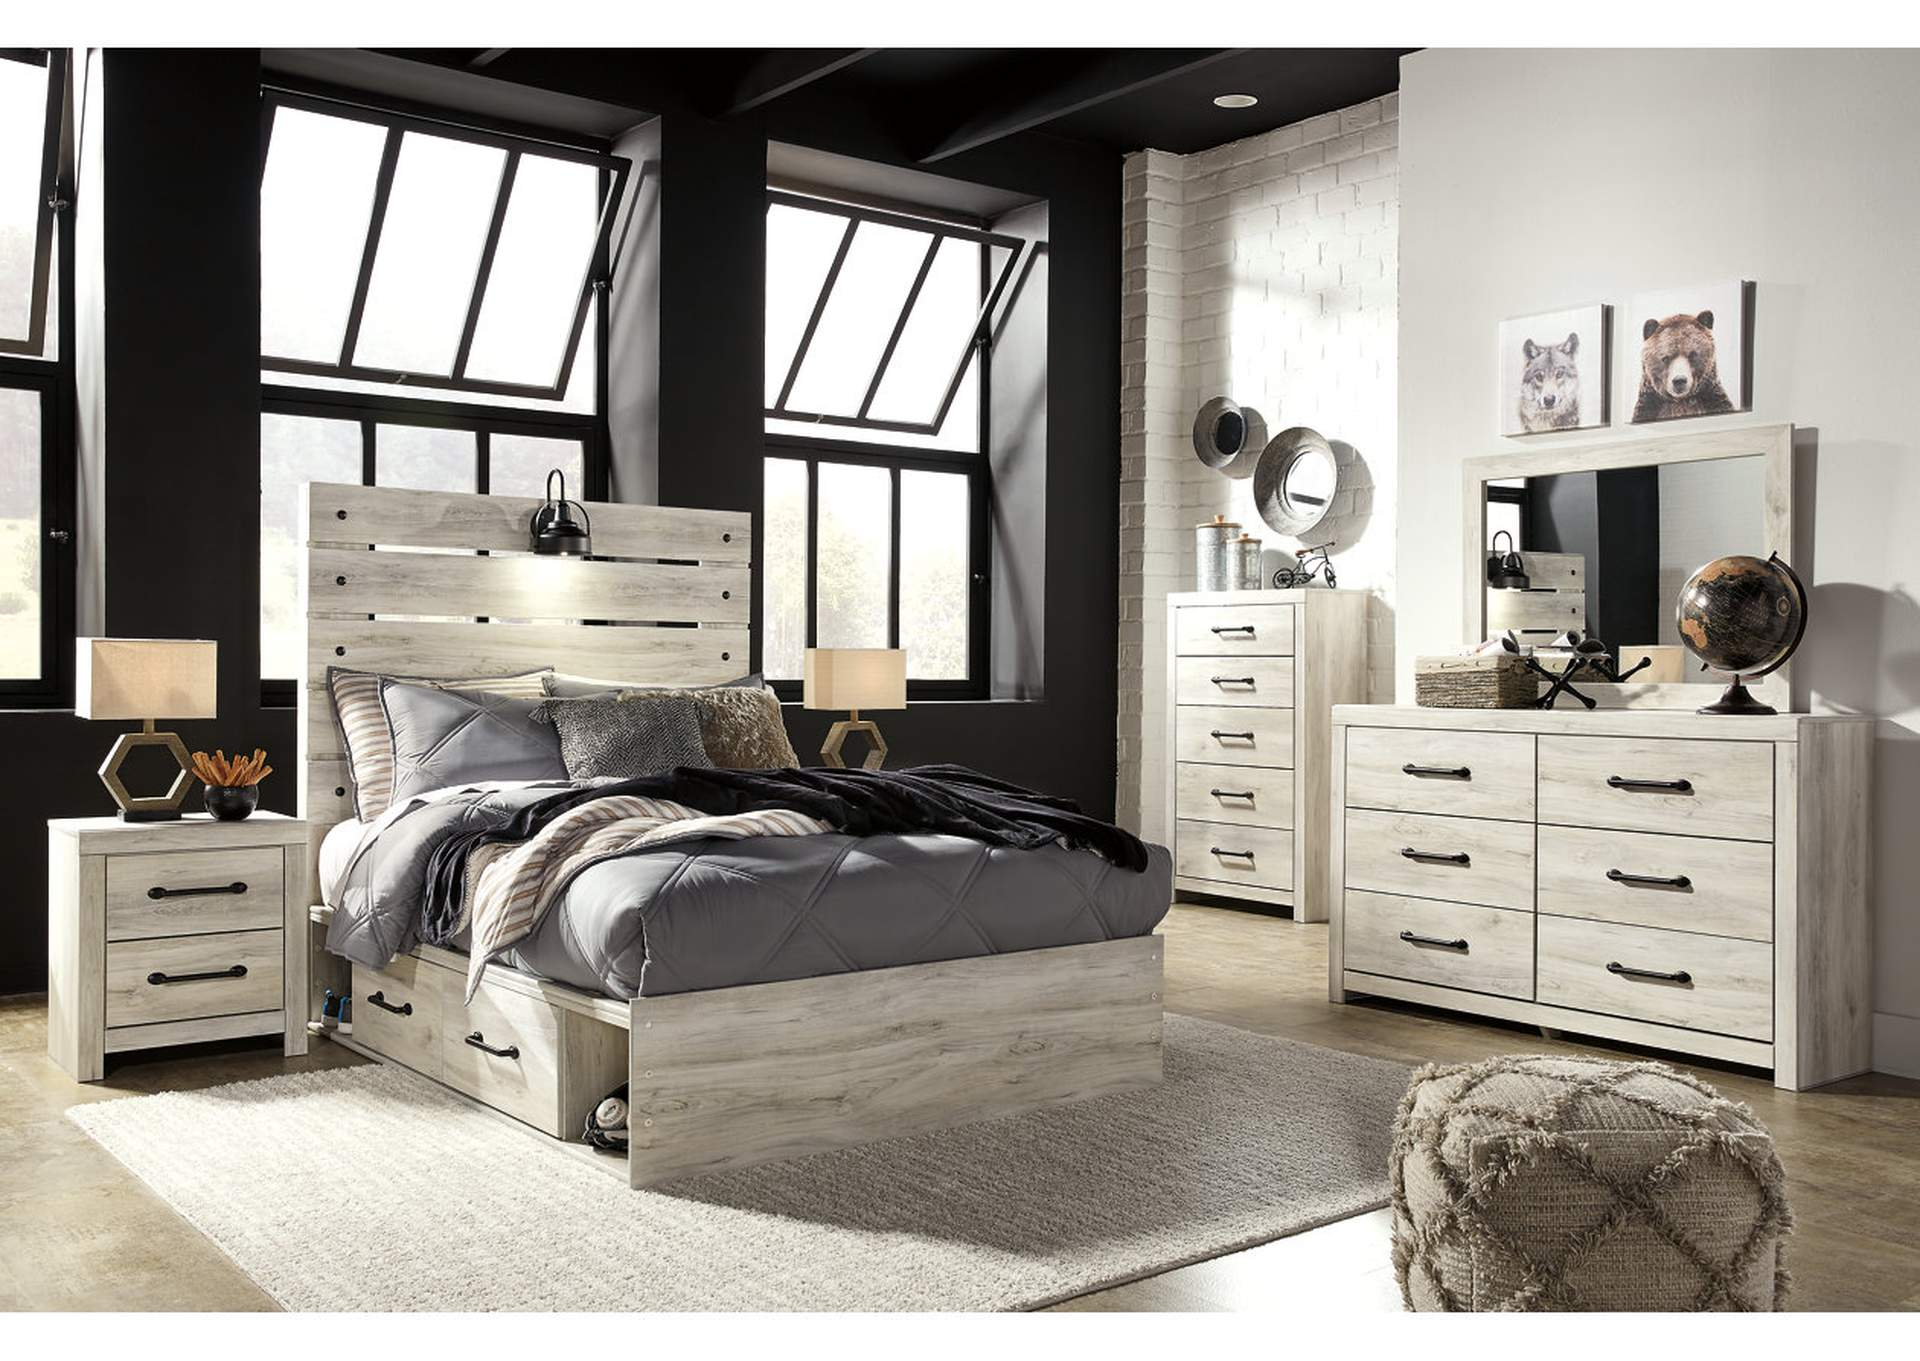 Cambeck Full Panel Bed with 2 Storage Drawers, Dresser and Mirror,Signature Design By Ashley